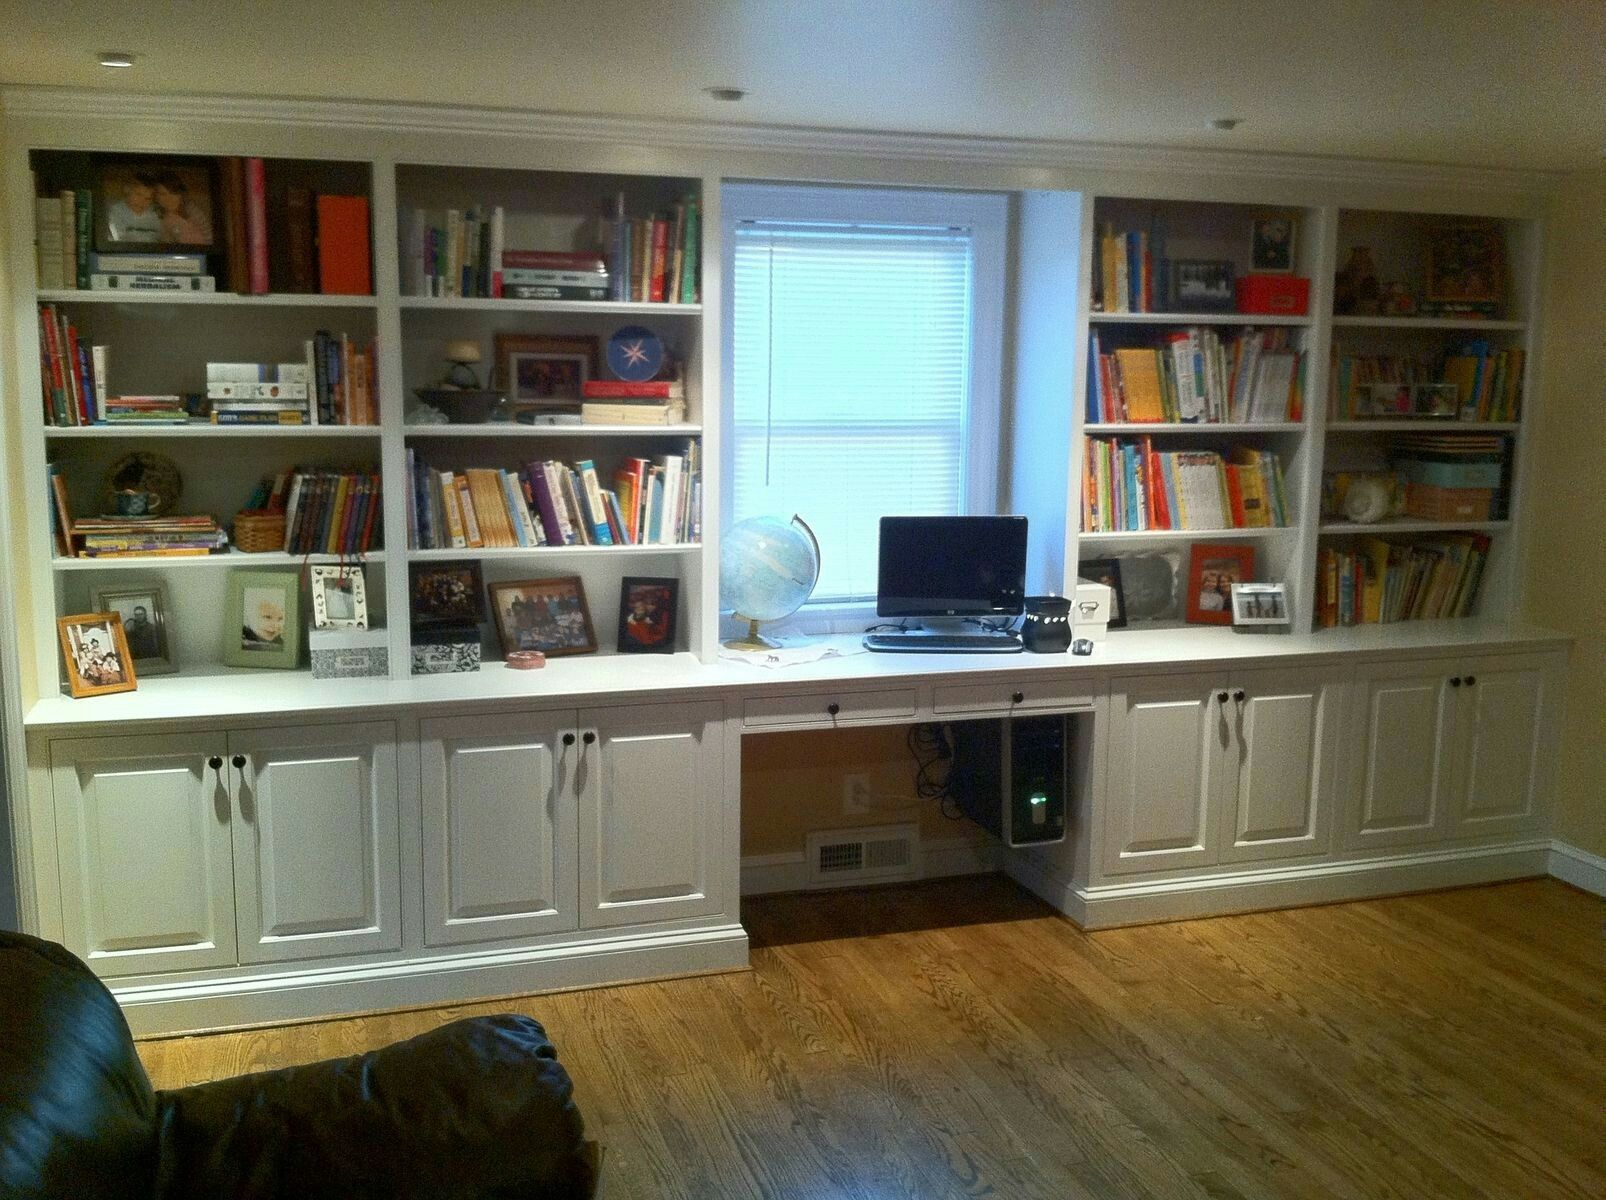 Appealing bookshelf in bedroom with white wooden